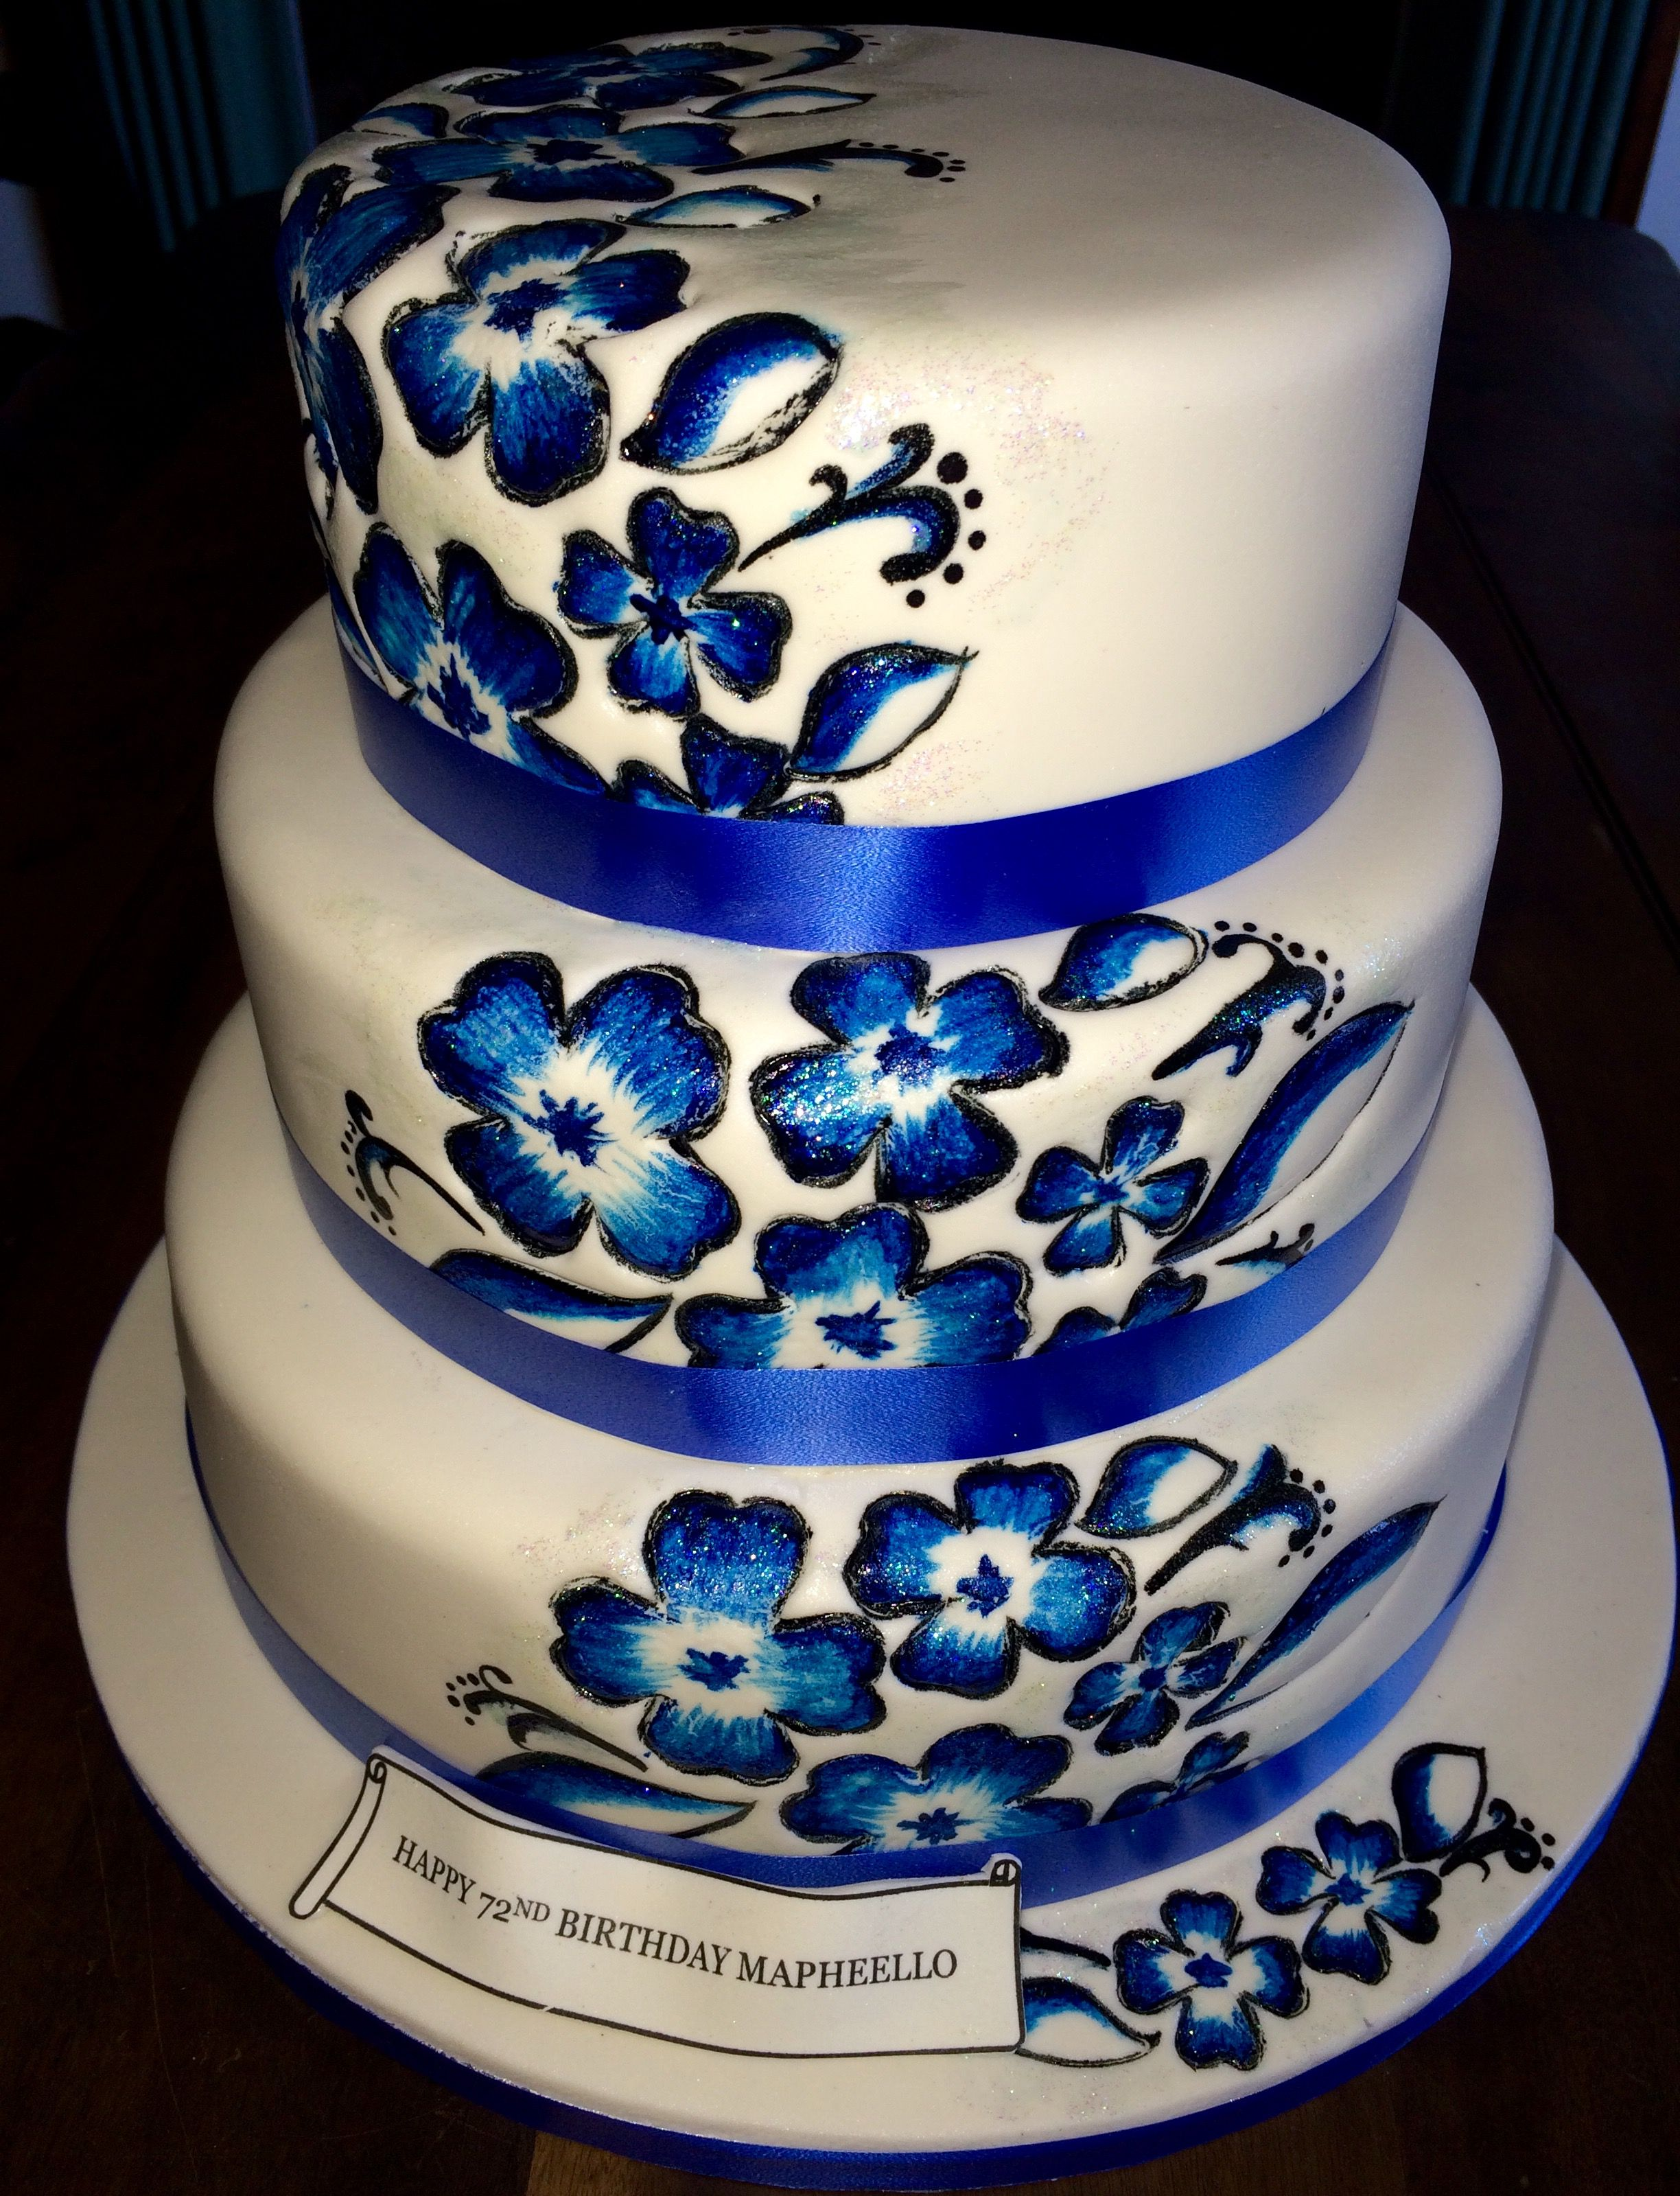 Three Tier 72nd Birthday Cake In Blue And White